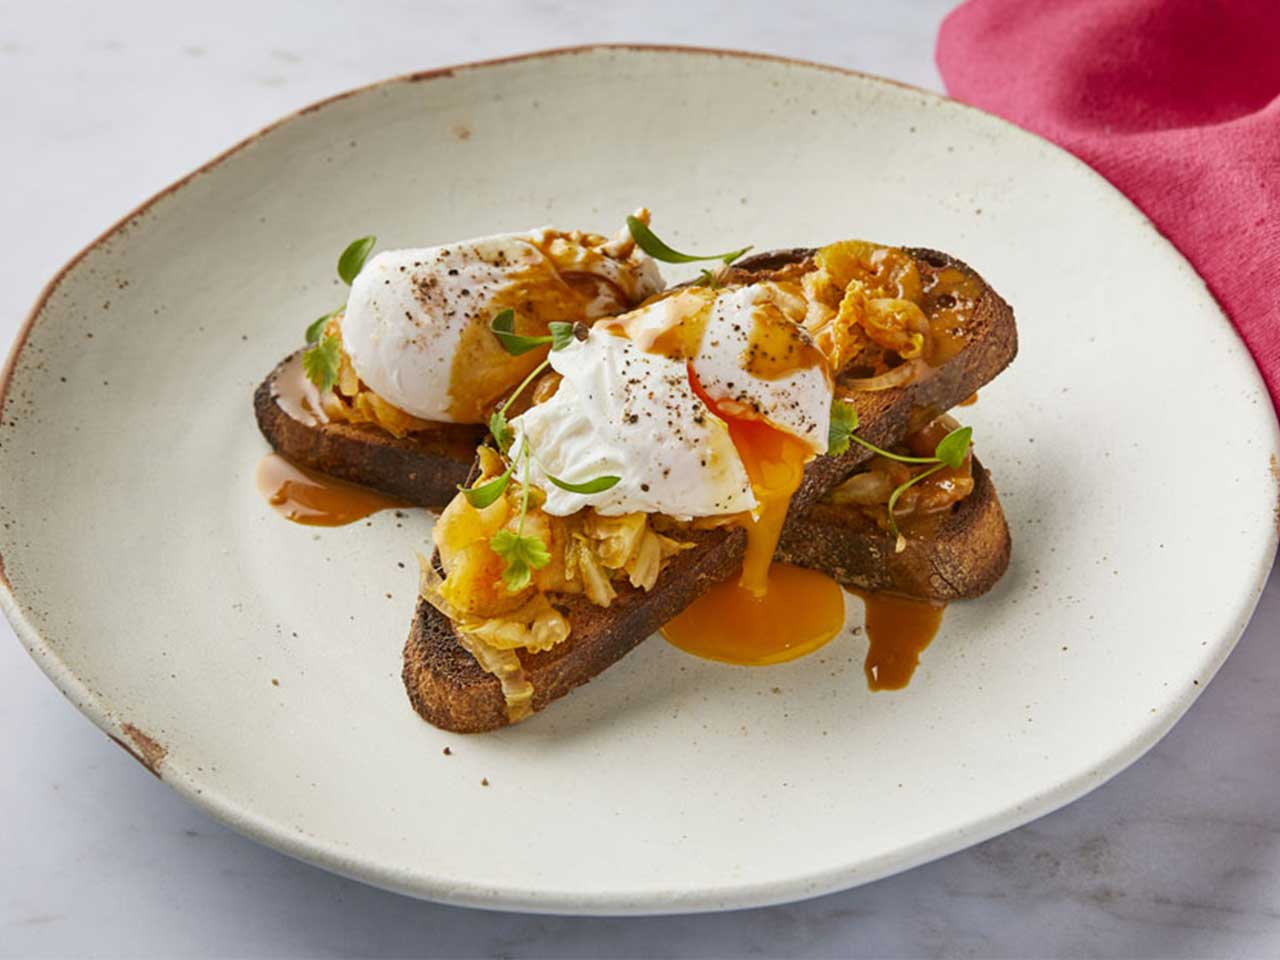 Poached eggs and kimchi